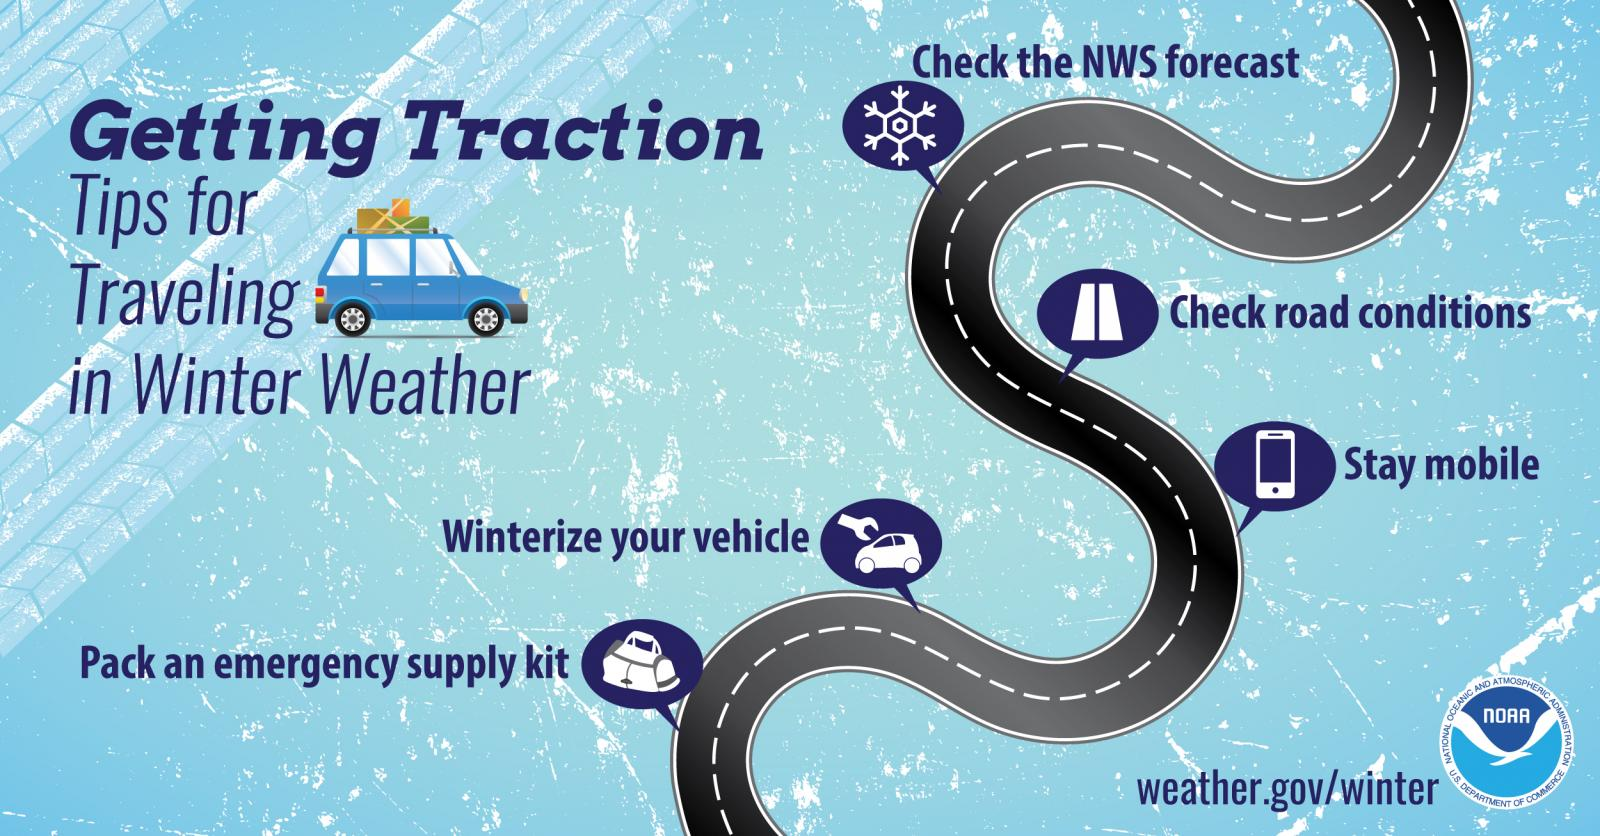 Getting Traction - Tips for Traveling in Winter: Pack an emergency supply kit. Winterize your vehicle. Check the NWS forecast. Check road conditions. Have your mobile device on hand.